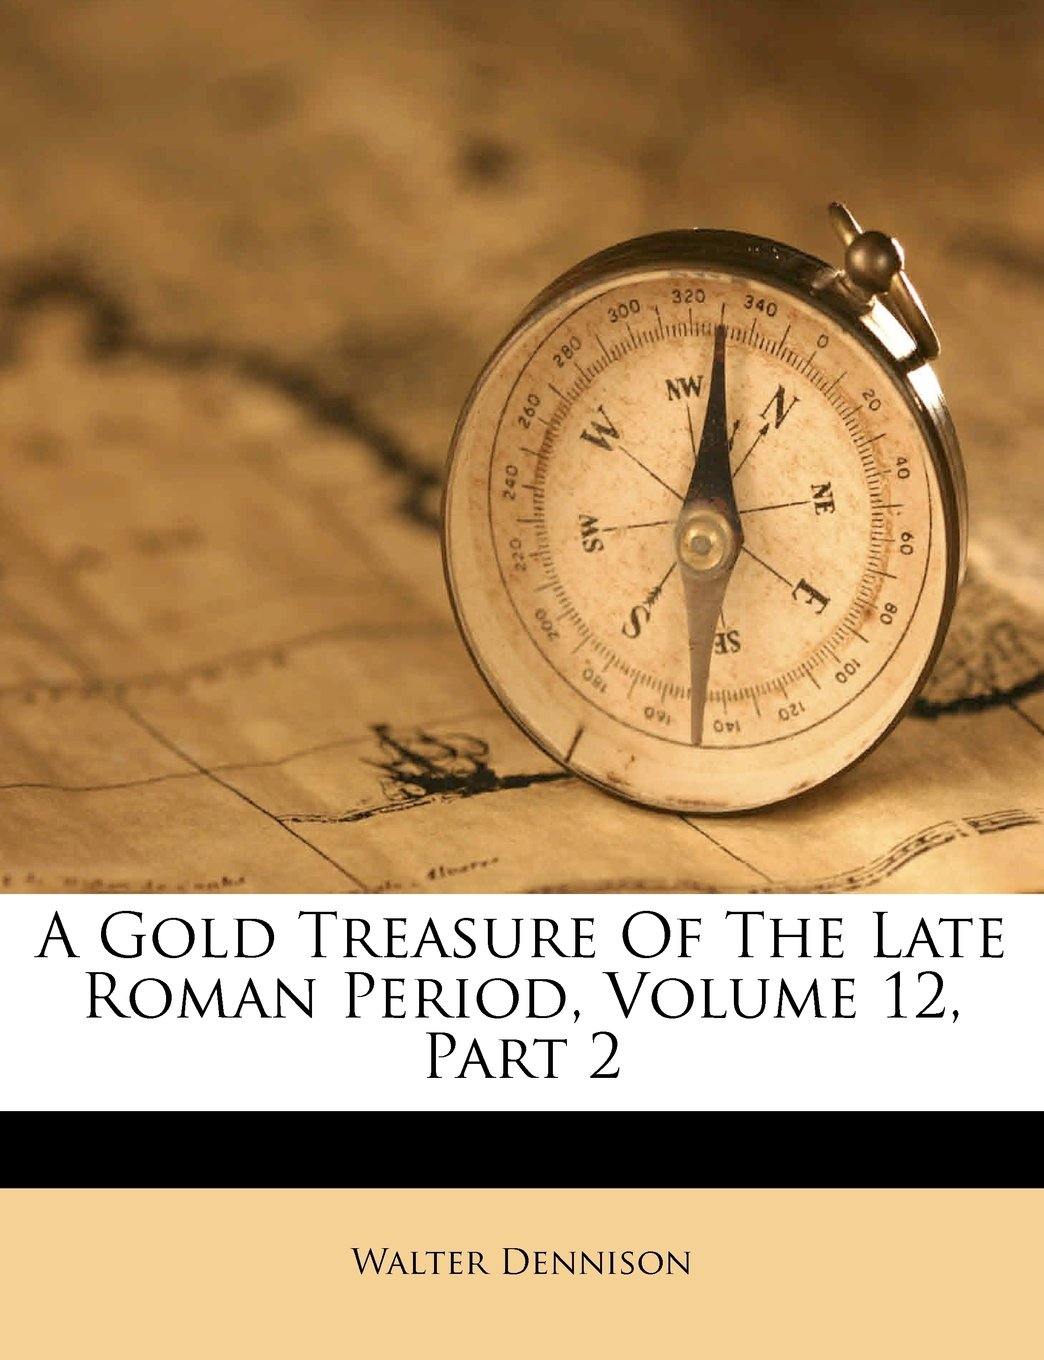 A Gold Treasure Of The Late Roman Period, Volume 12, Part 2 pdf